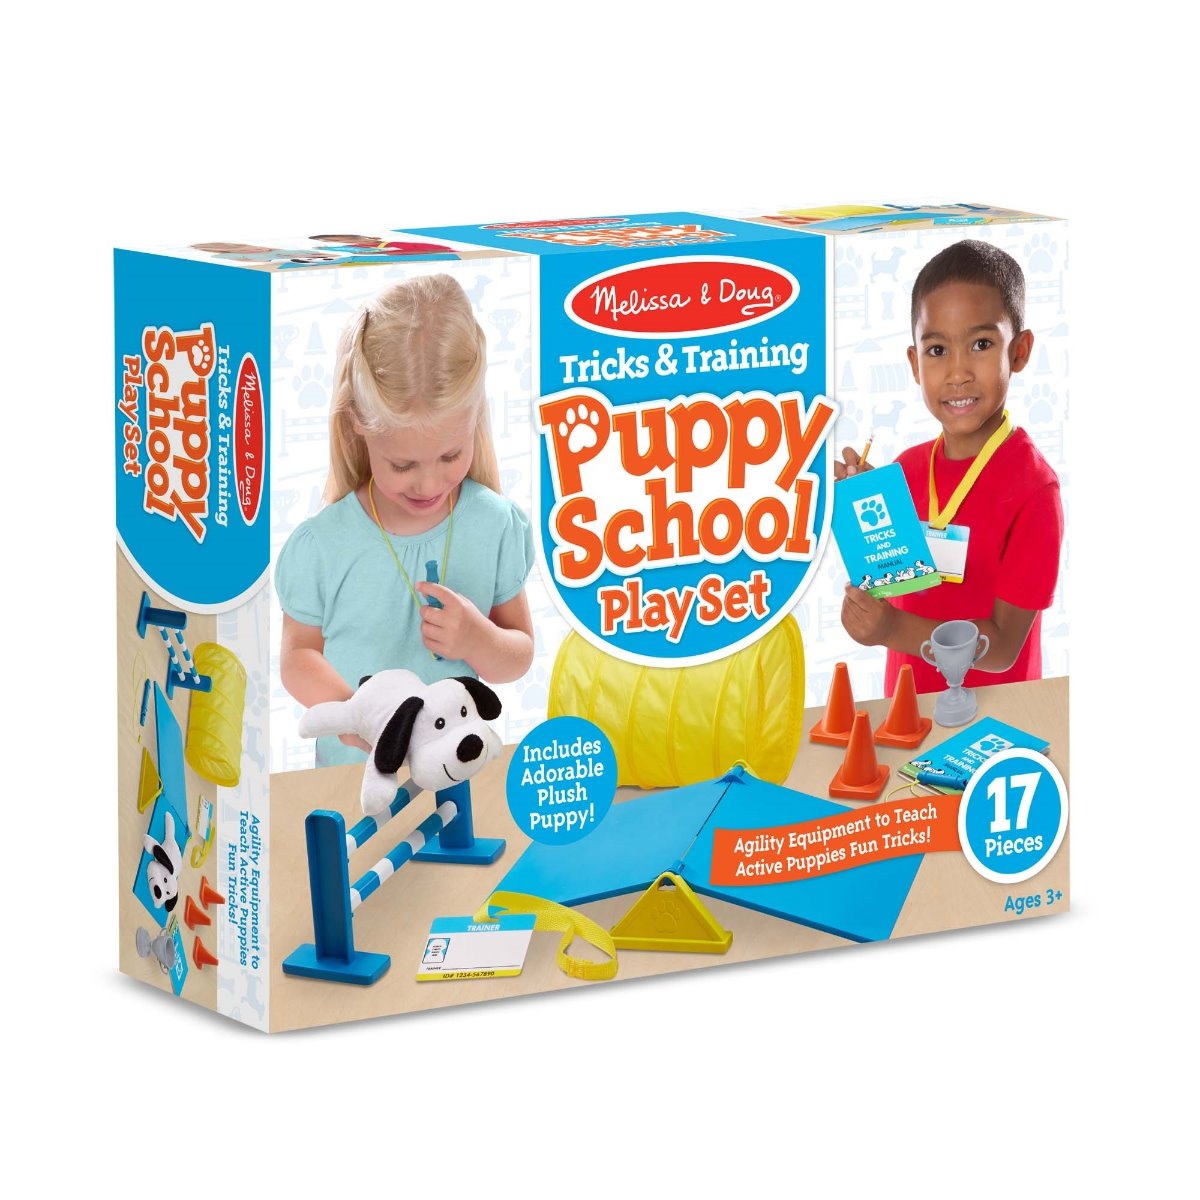 Melissa and Doug Tricks and Training Puppy School Play Set